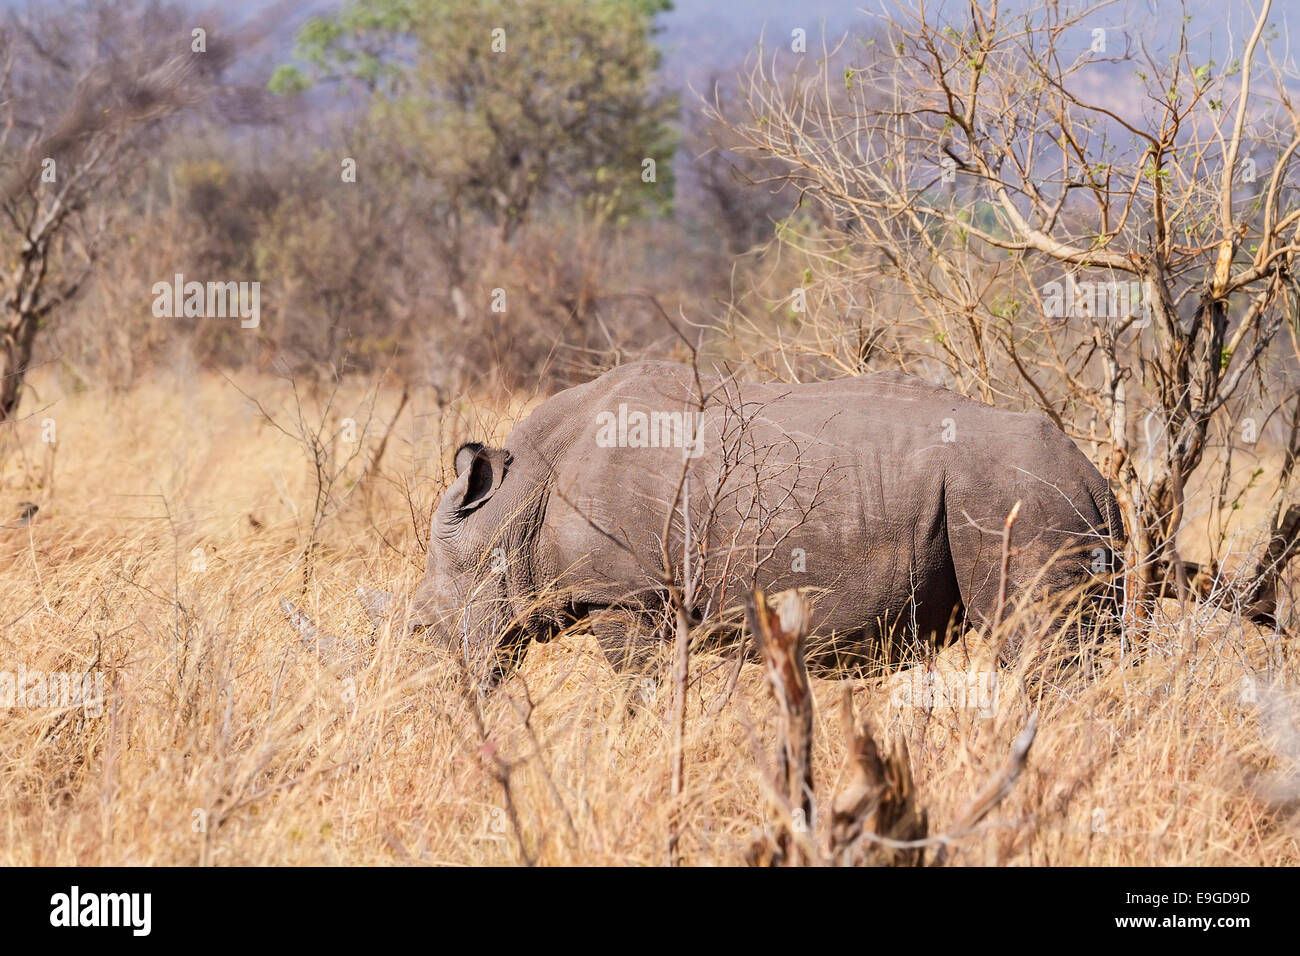 White Rhinoceros (Ceratotherium simum) feeding in shrubland in Mosi-oa-Tunya National Park near Victoria Falls, Stock Photo